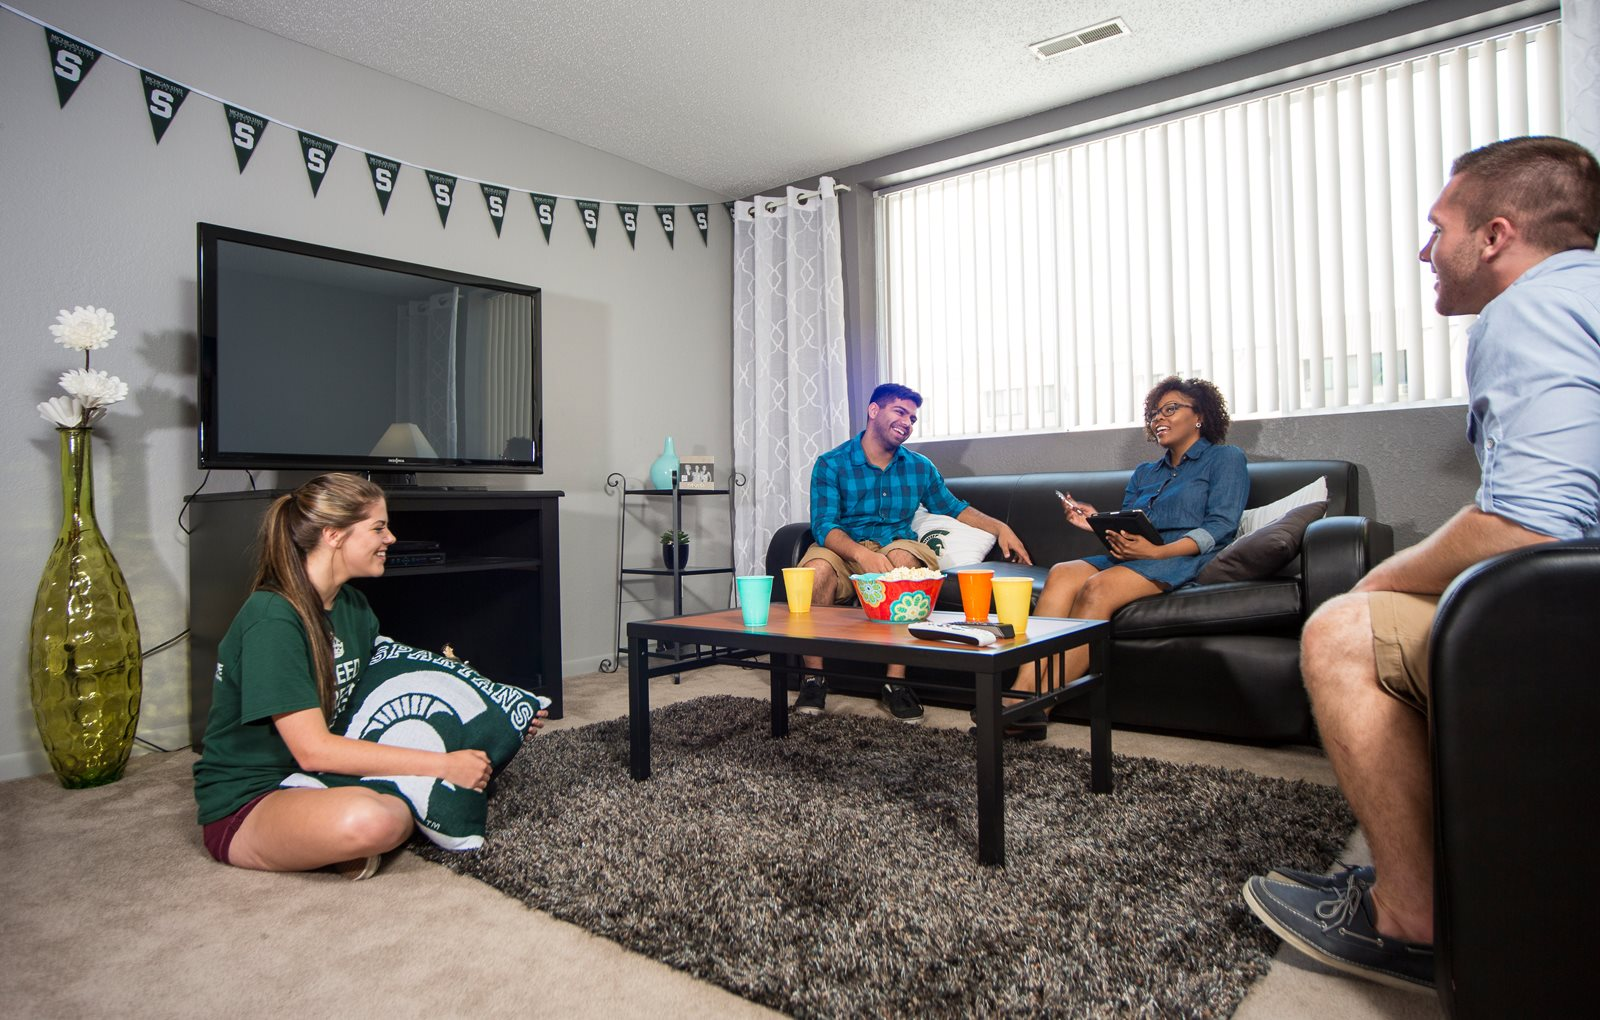 East Lansing Apartments | Apartments near Michigan State University